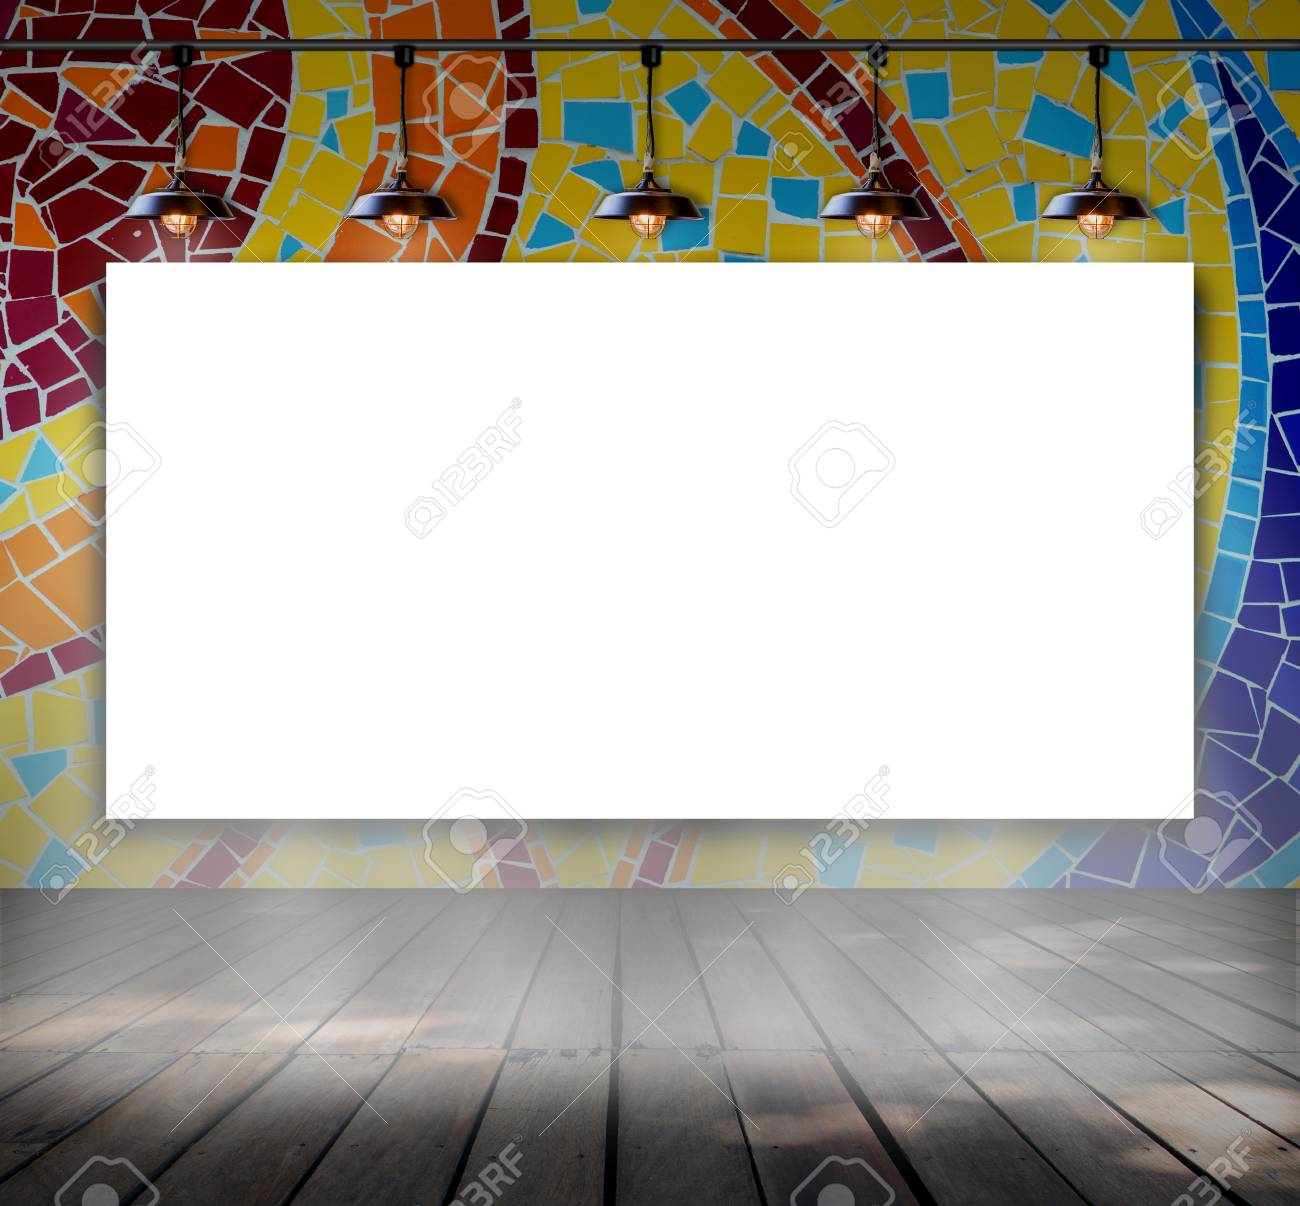 Blank Frame On Mosaic Tile Wall With Ceiling Lamp For Information ...